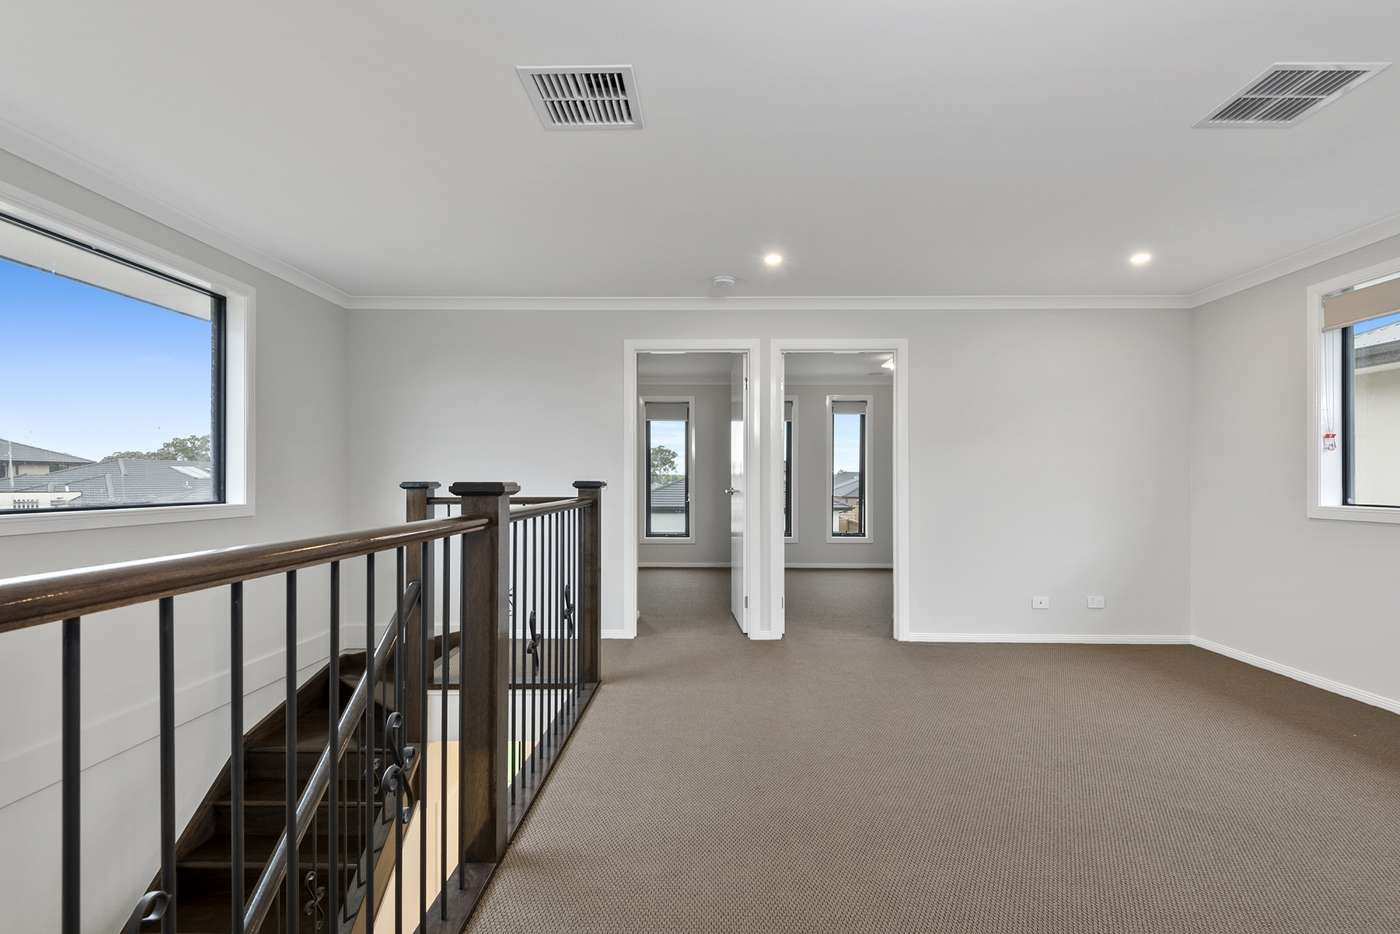 Seventh view of Homely house listing, 19 Pollard Avenue, Doreen VIC 3754